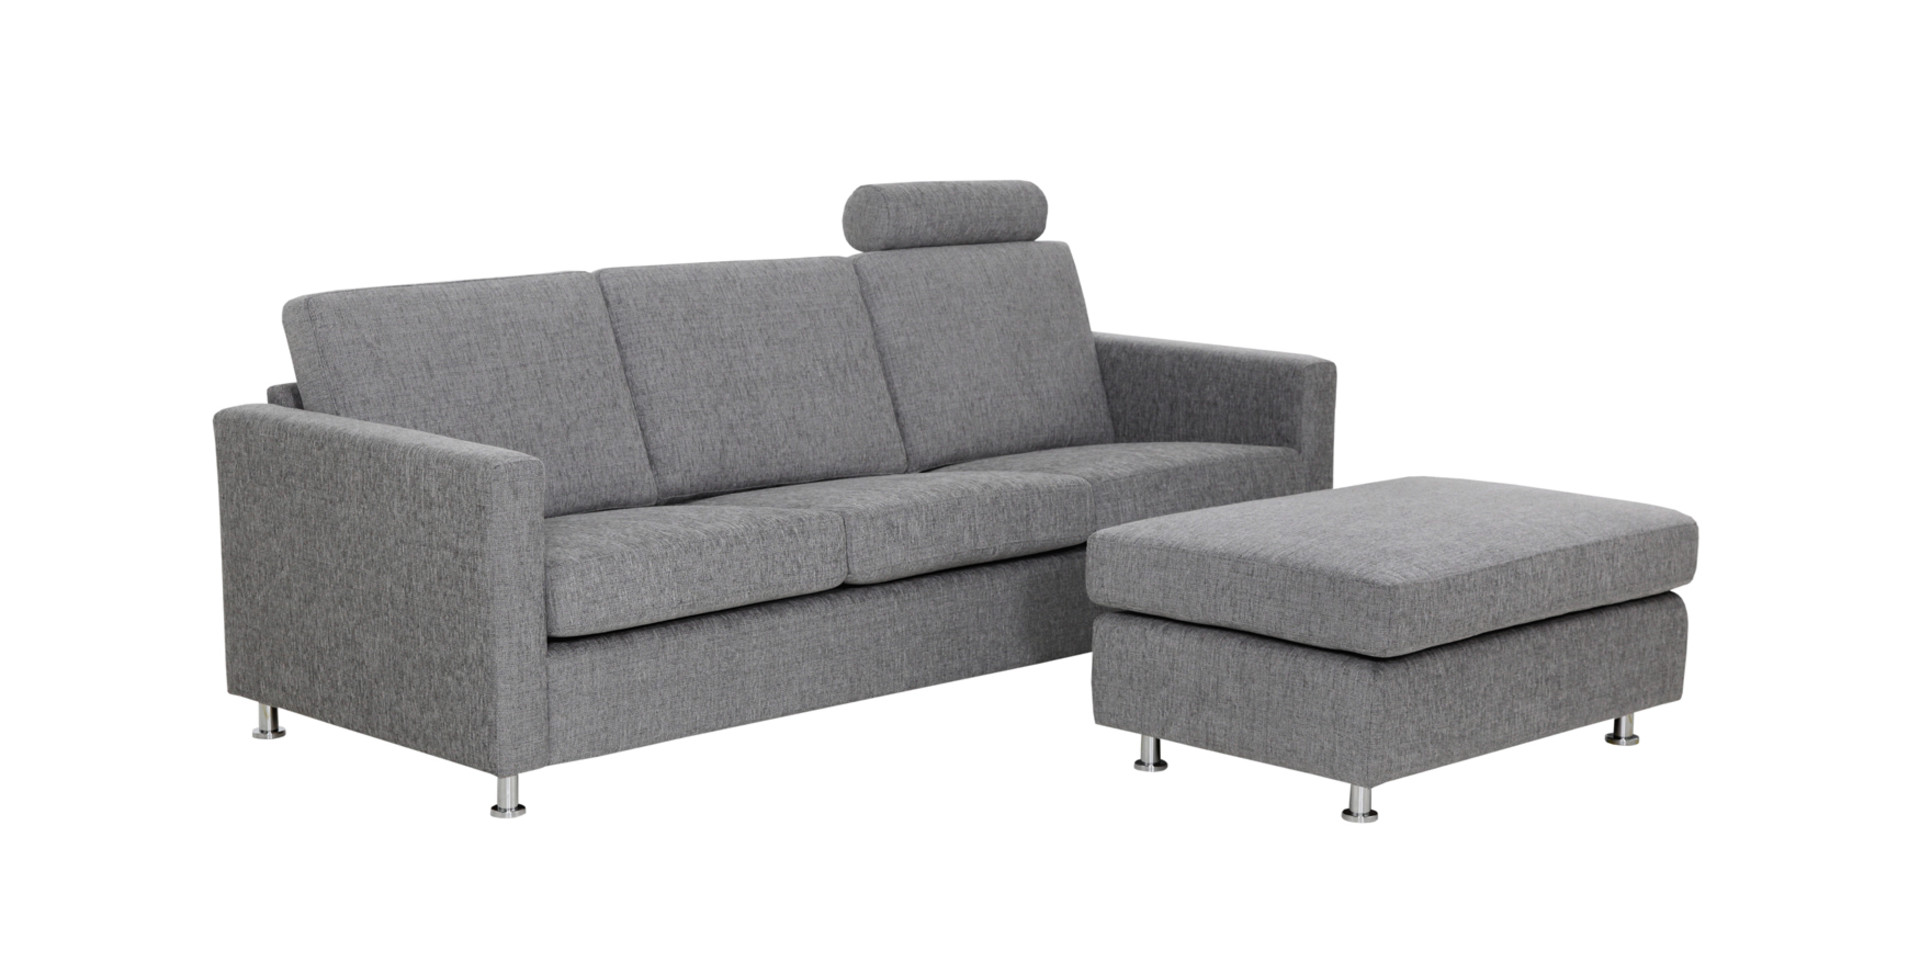 sits-palma-canape-pouf-3seater_footstool_headrest_veraam1c9grey_2